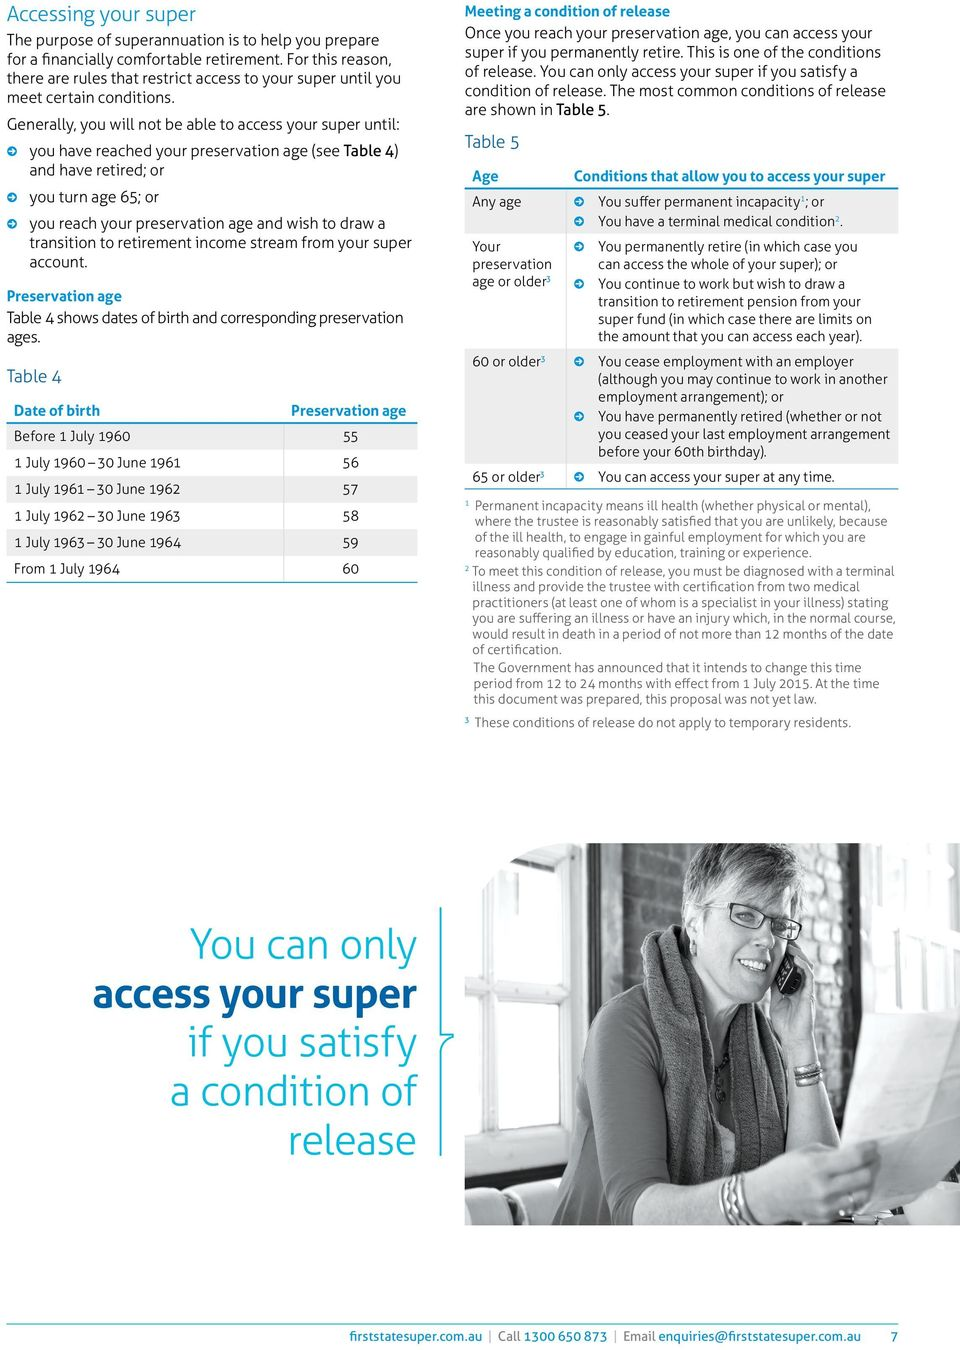 Generally, you will not be able to access your super until: you have reached your preservation age (see Table 4) and have retired; or you turn age 65; or you reach your preservation age and wish to